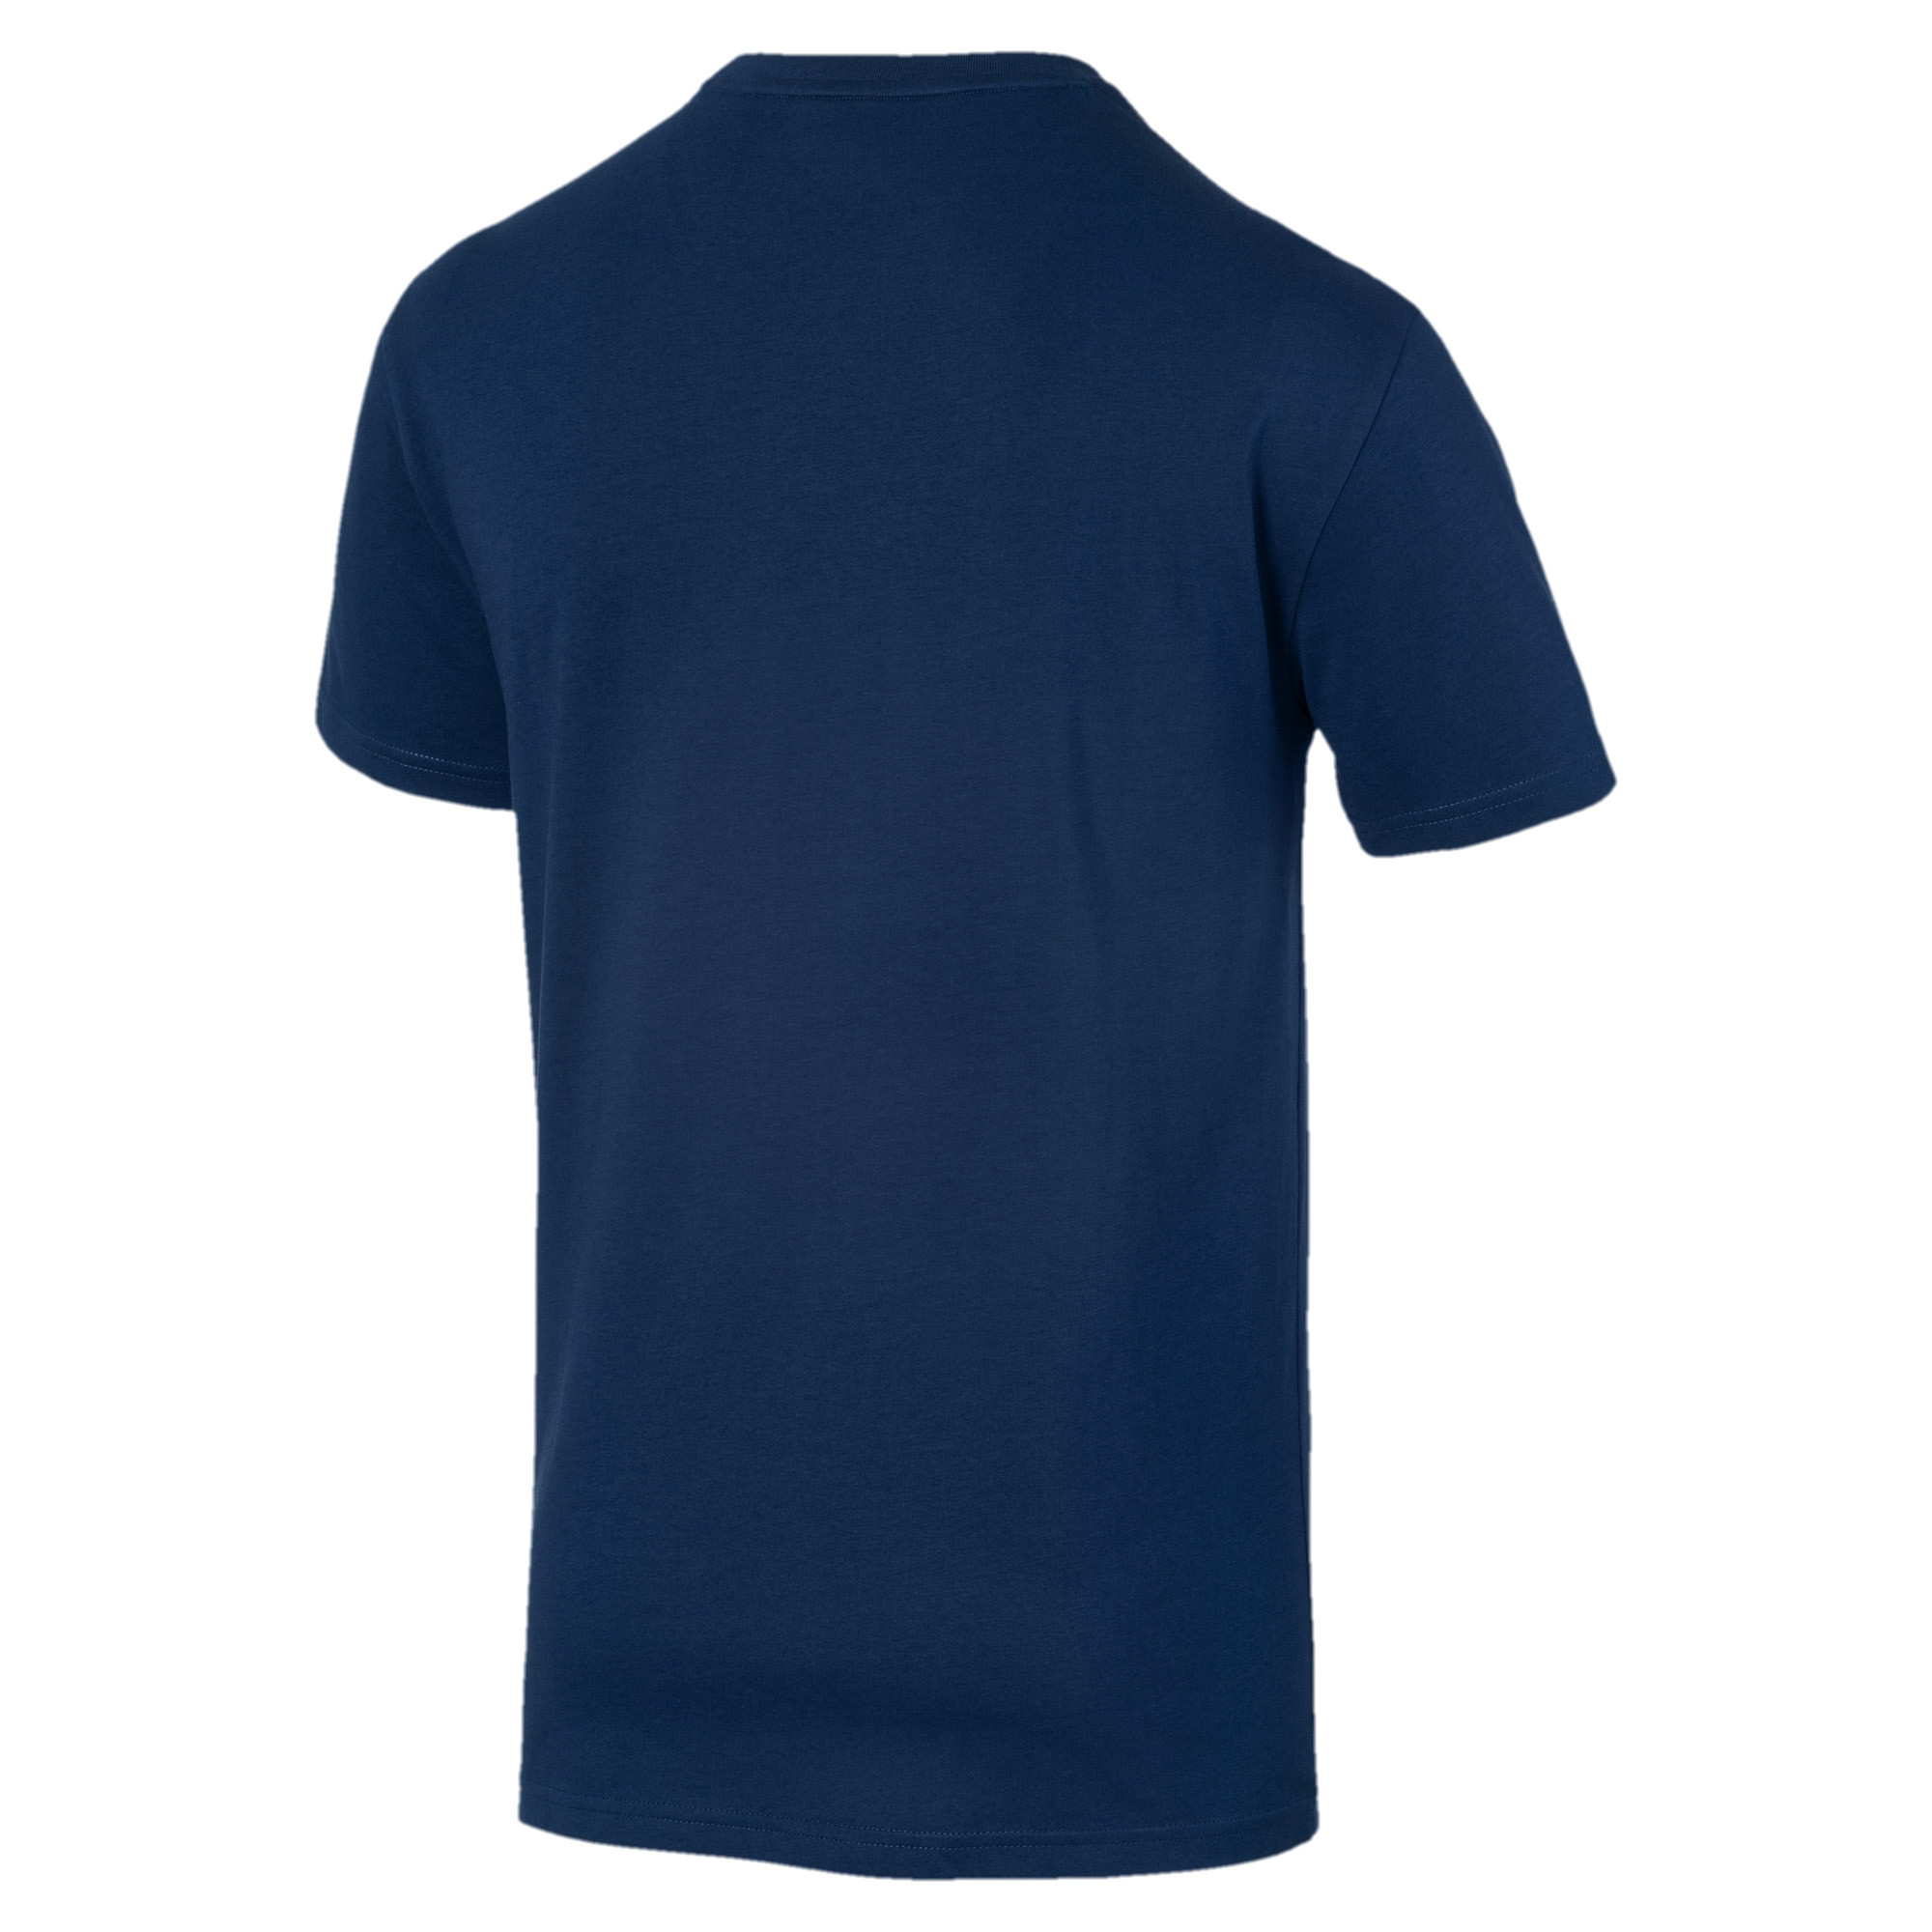 PUMA-Rebel-Bold-Men-039-s-Tee-Men-Tee-Basics thumbnail 20